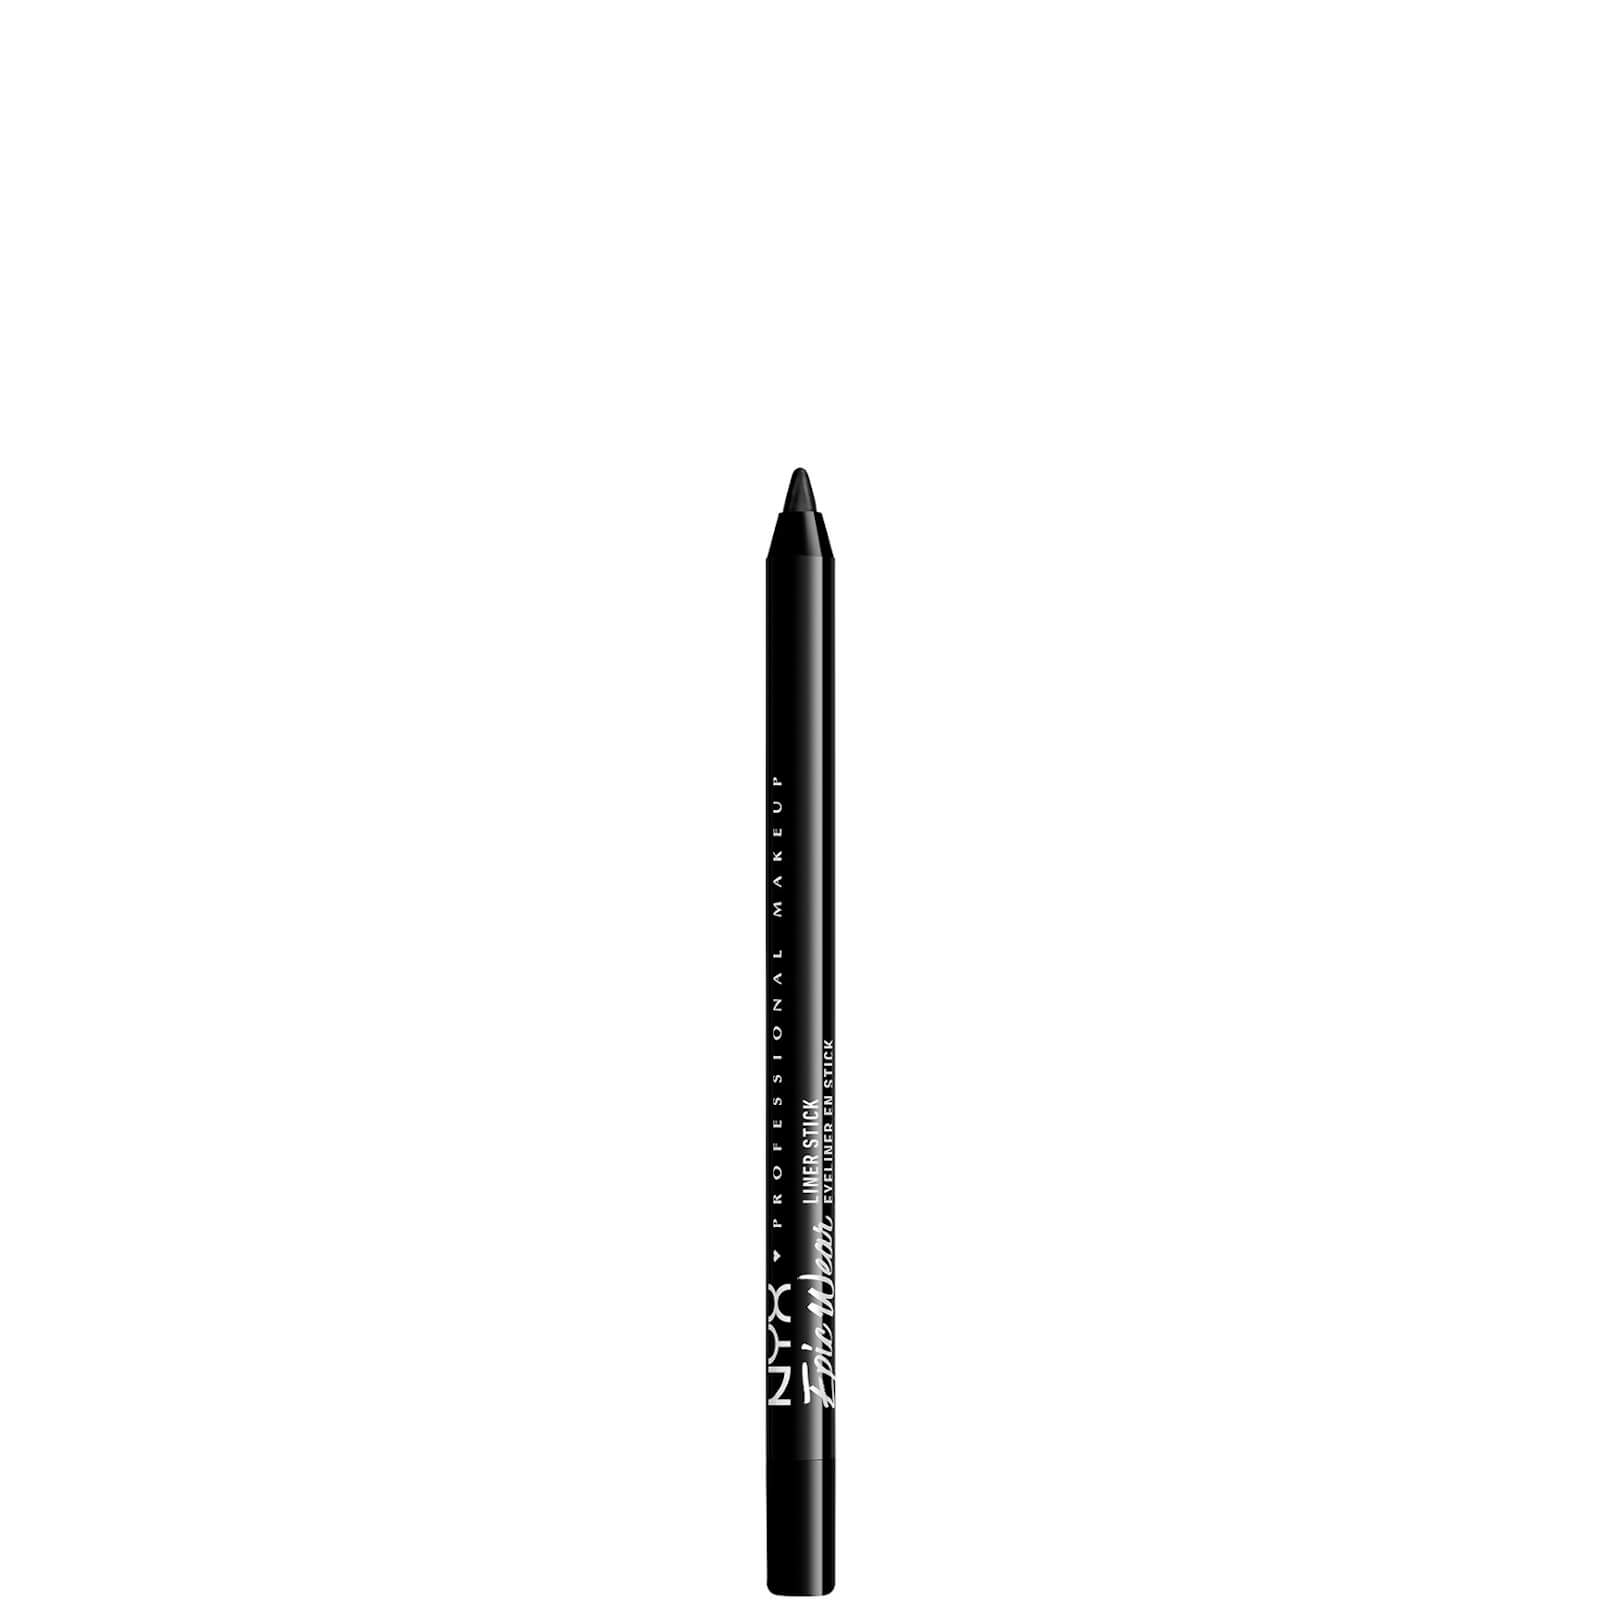 nyx professional makeup epic wear long lasting liner stick 5.44g (various shades) - pitch black